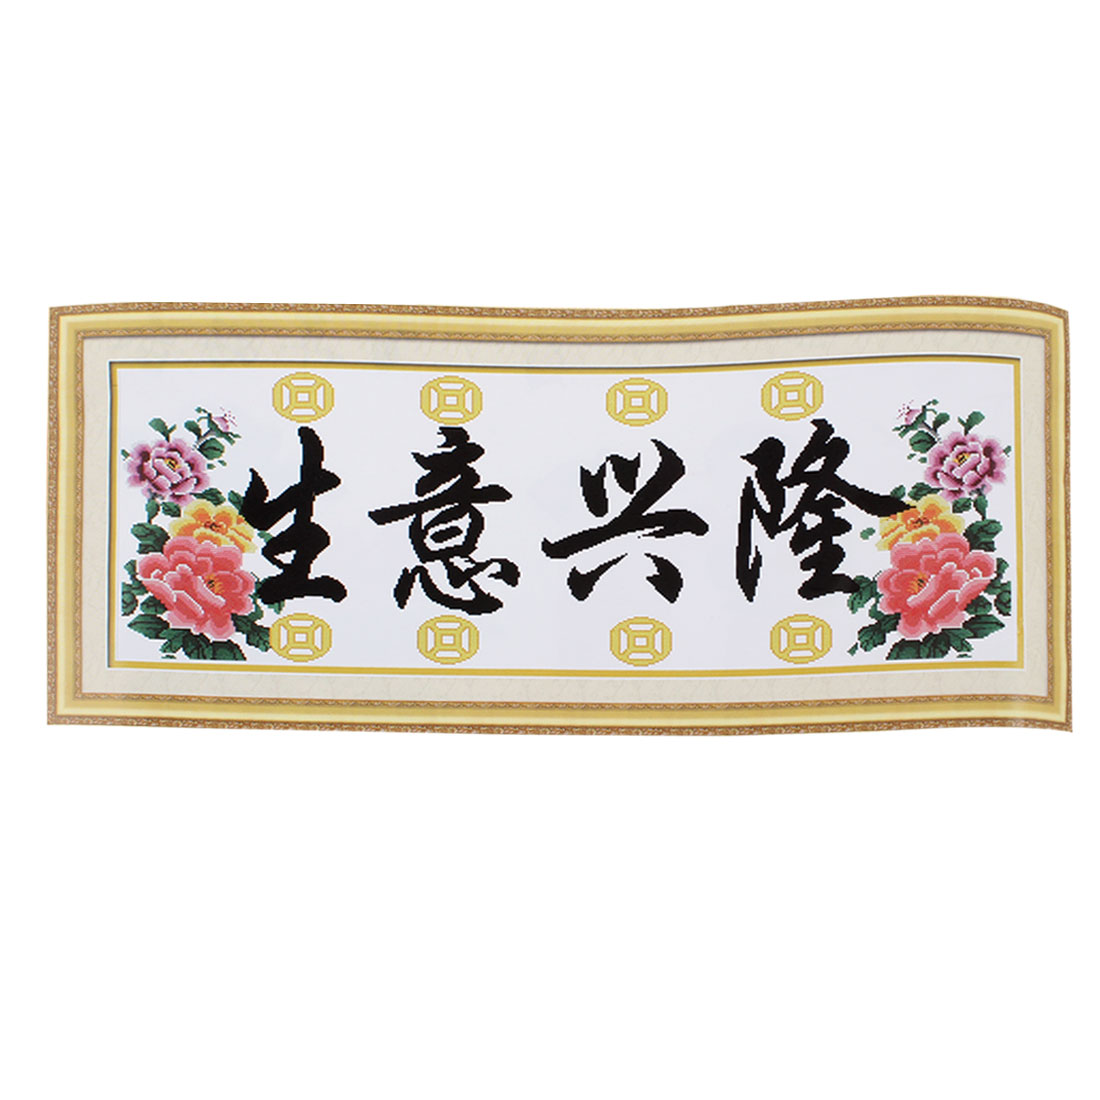 Chinese Floral Pattern Stamped Cross Stitch Counted Kit for Lady